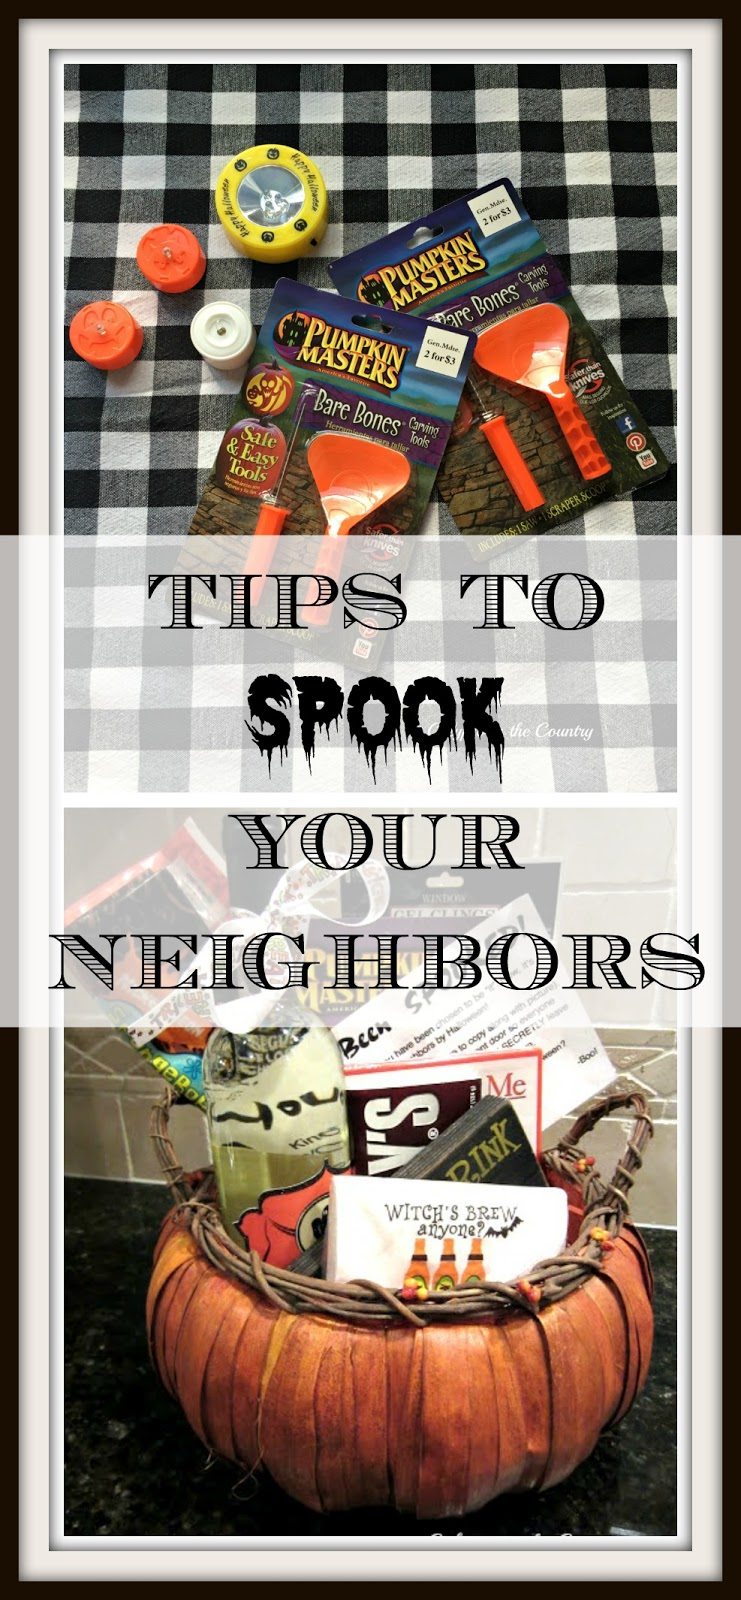 Fun Halloween Tradition - How to spook your neighbors with great ideas for goodie bags!